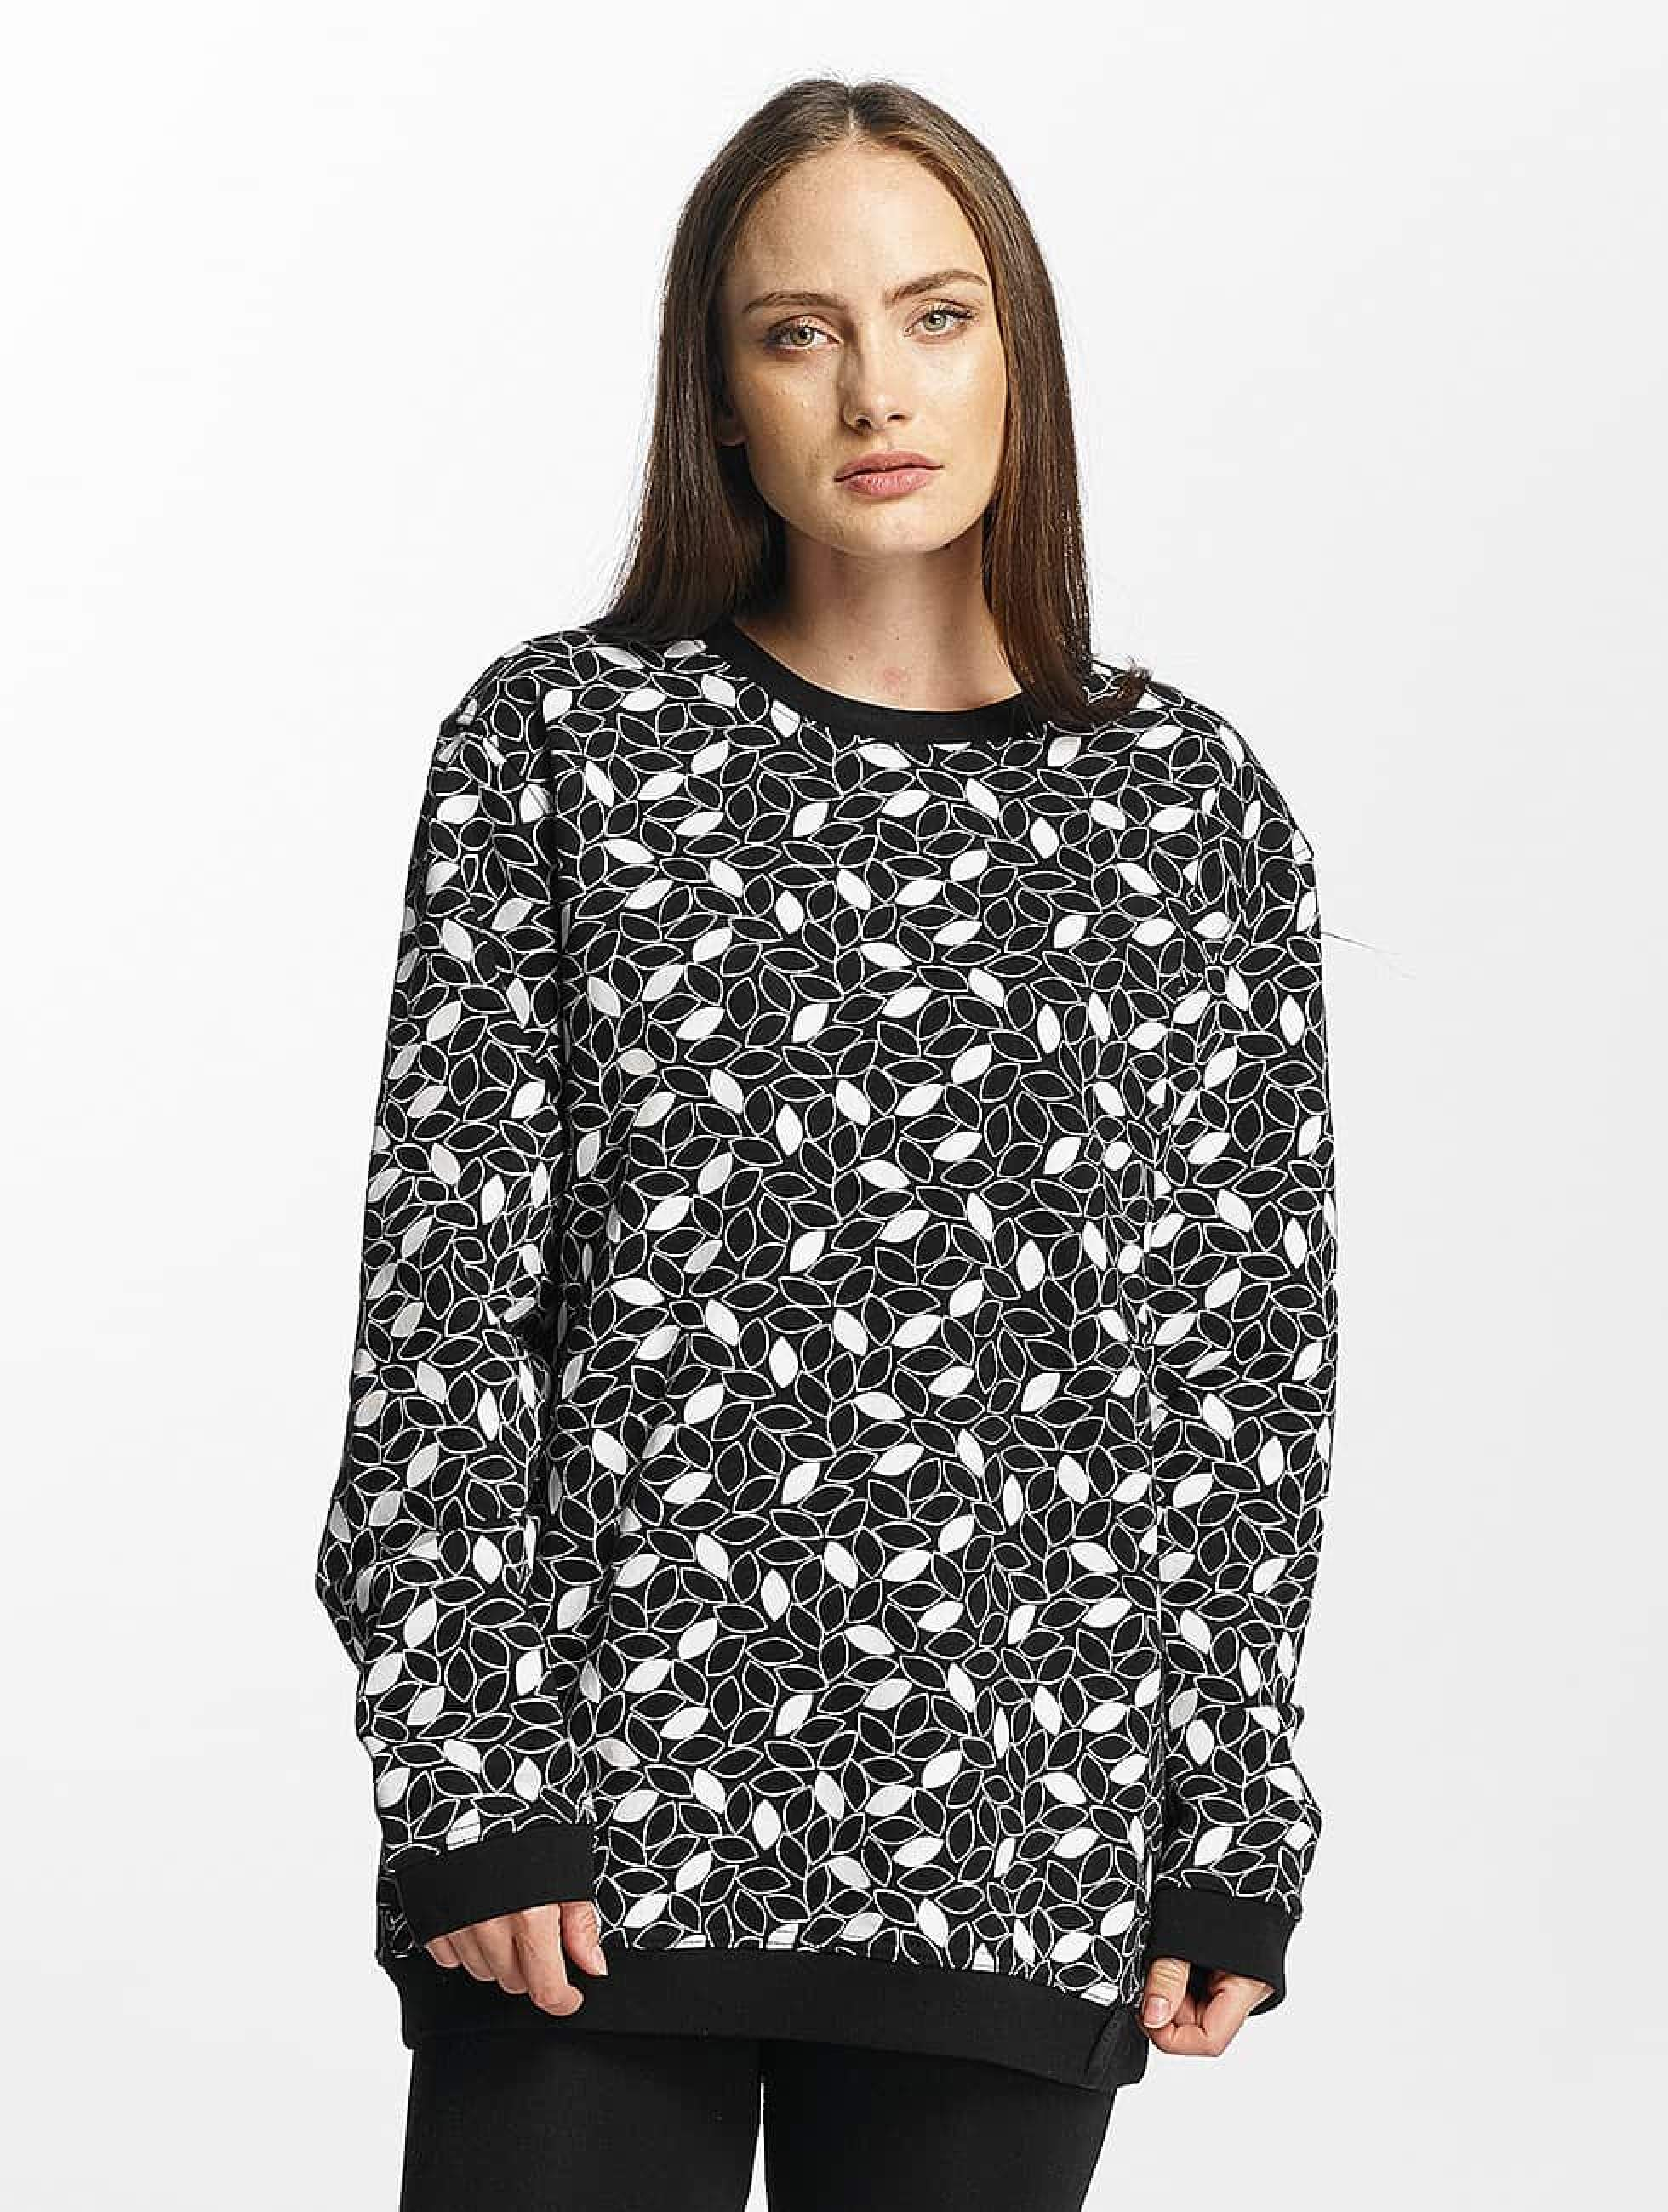 Cyprime / Jumper Tantalum Oversized in black L